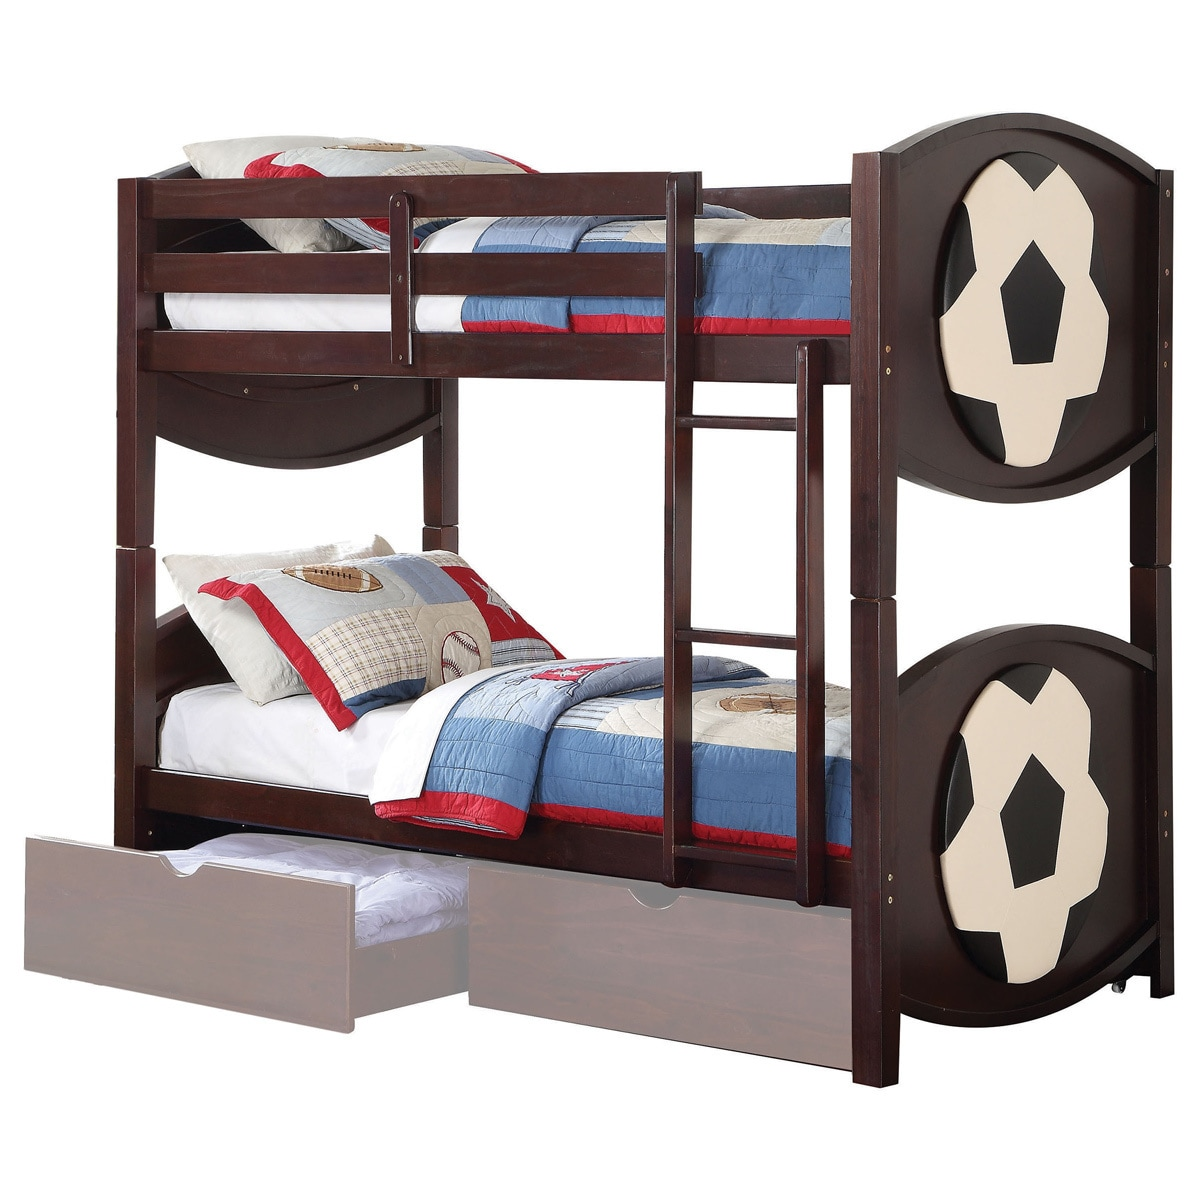 ACME Furniture All Star Twin over Twin Bunk Bed, Espresso...